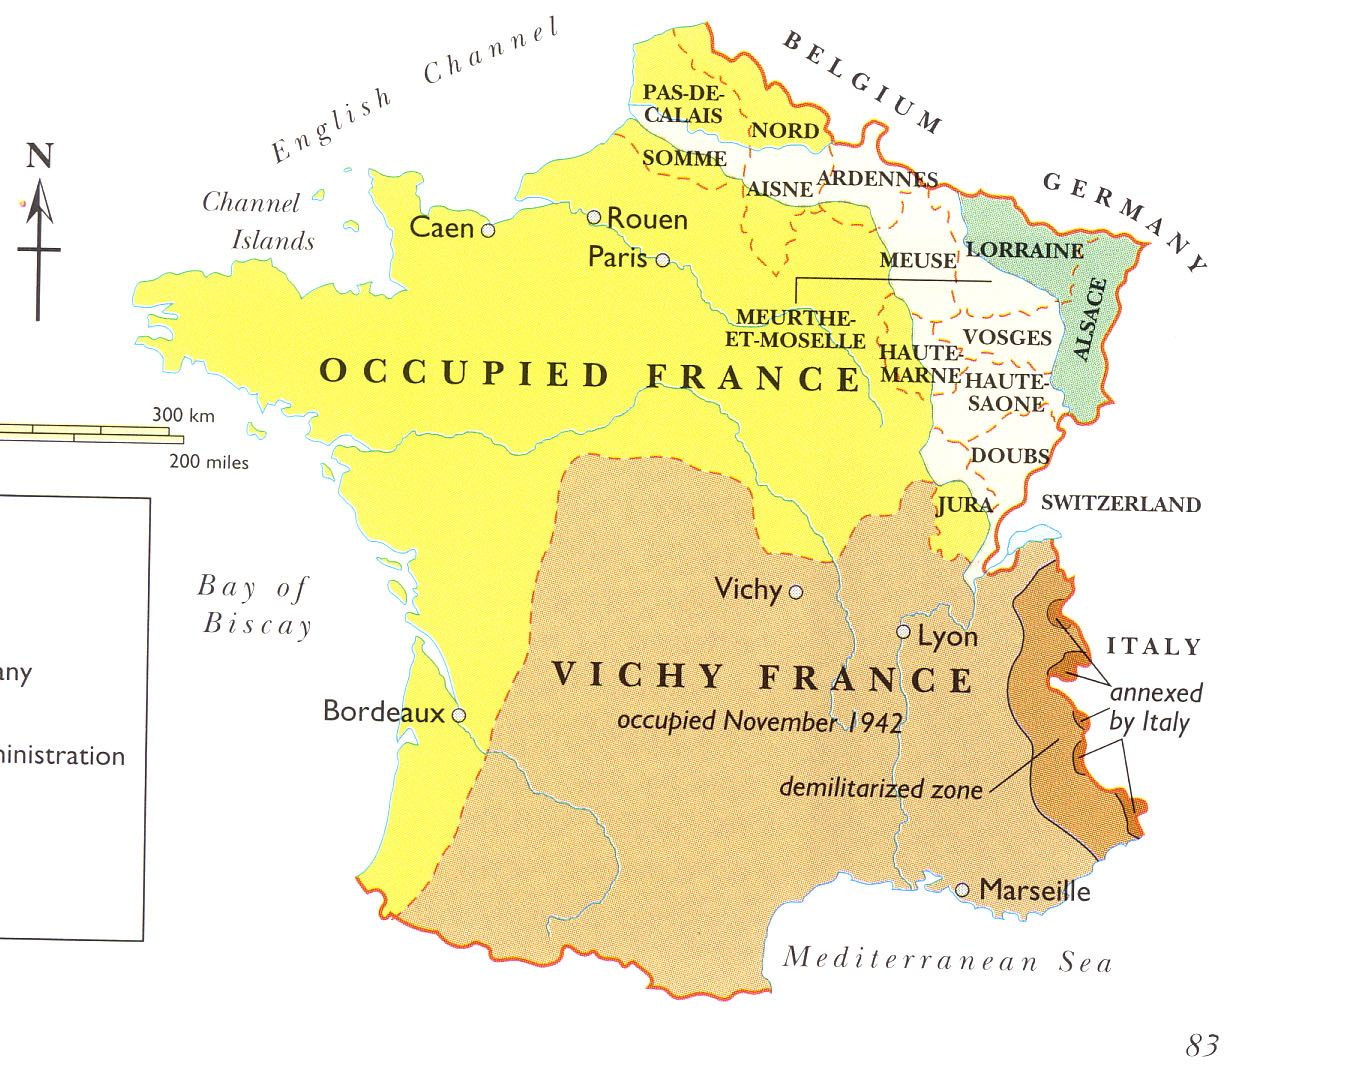 Map Of France During Wwii Source Http Pages Uoregon Edu